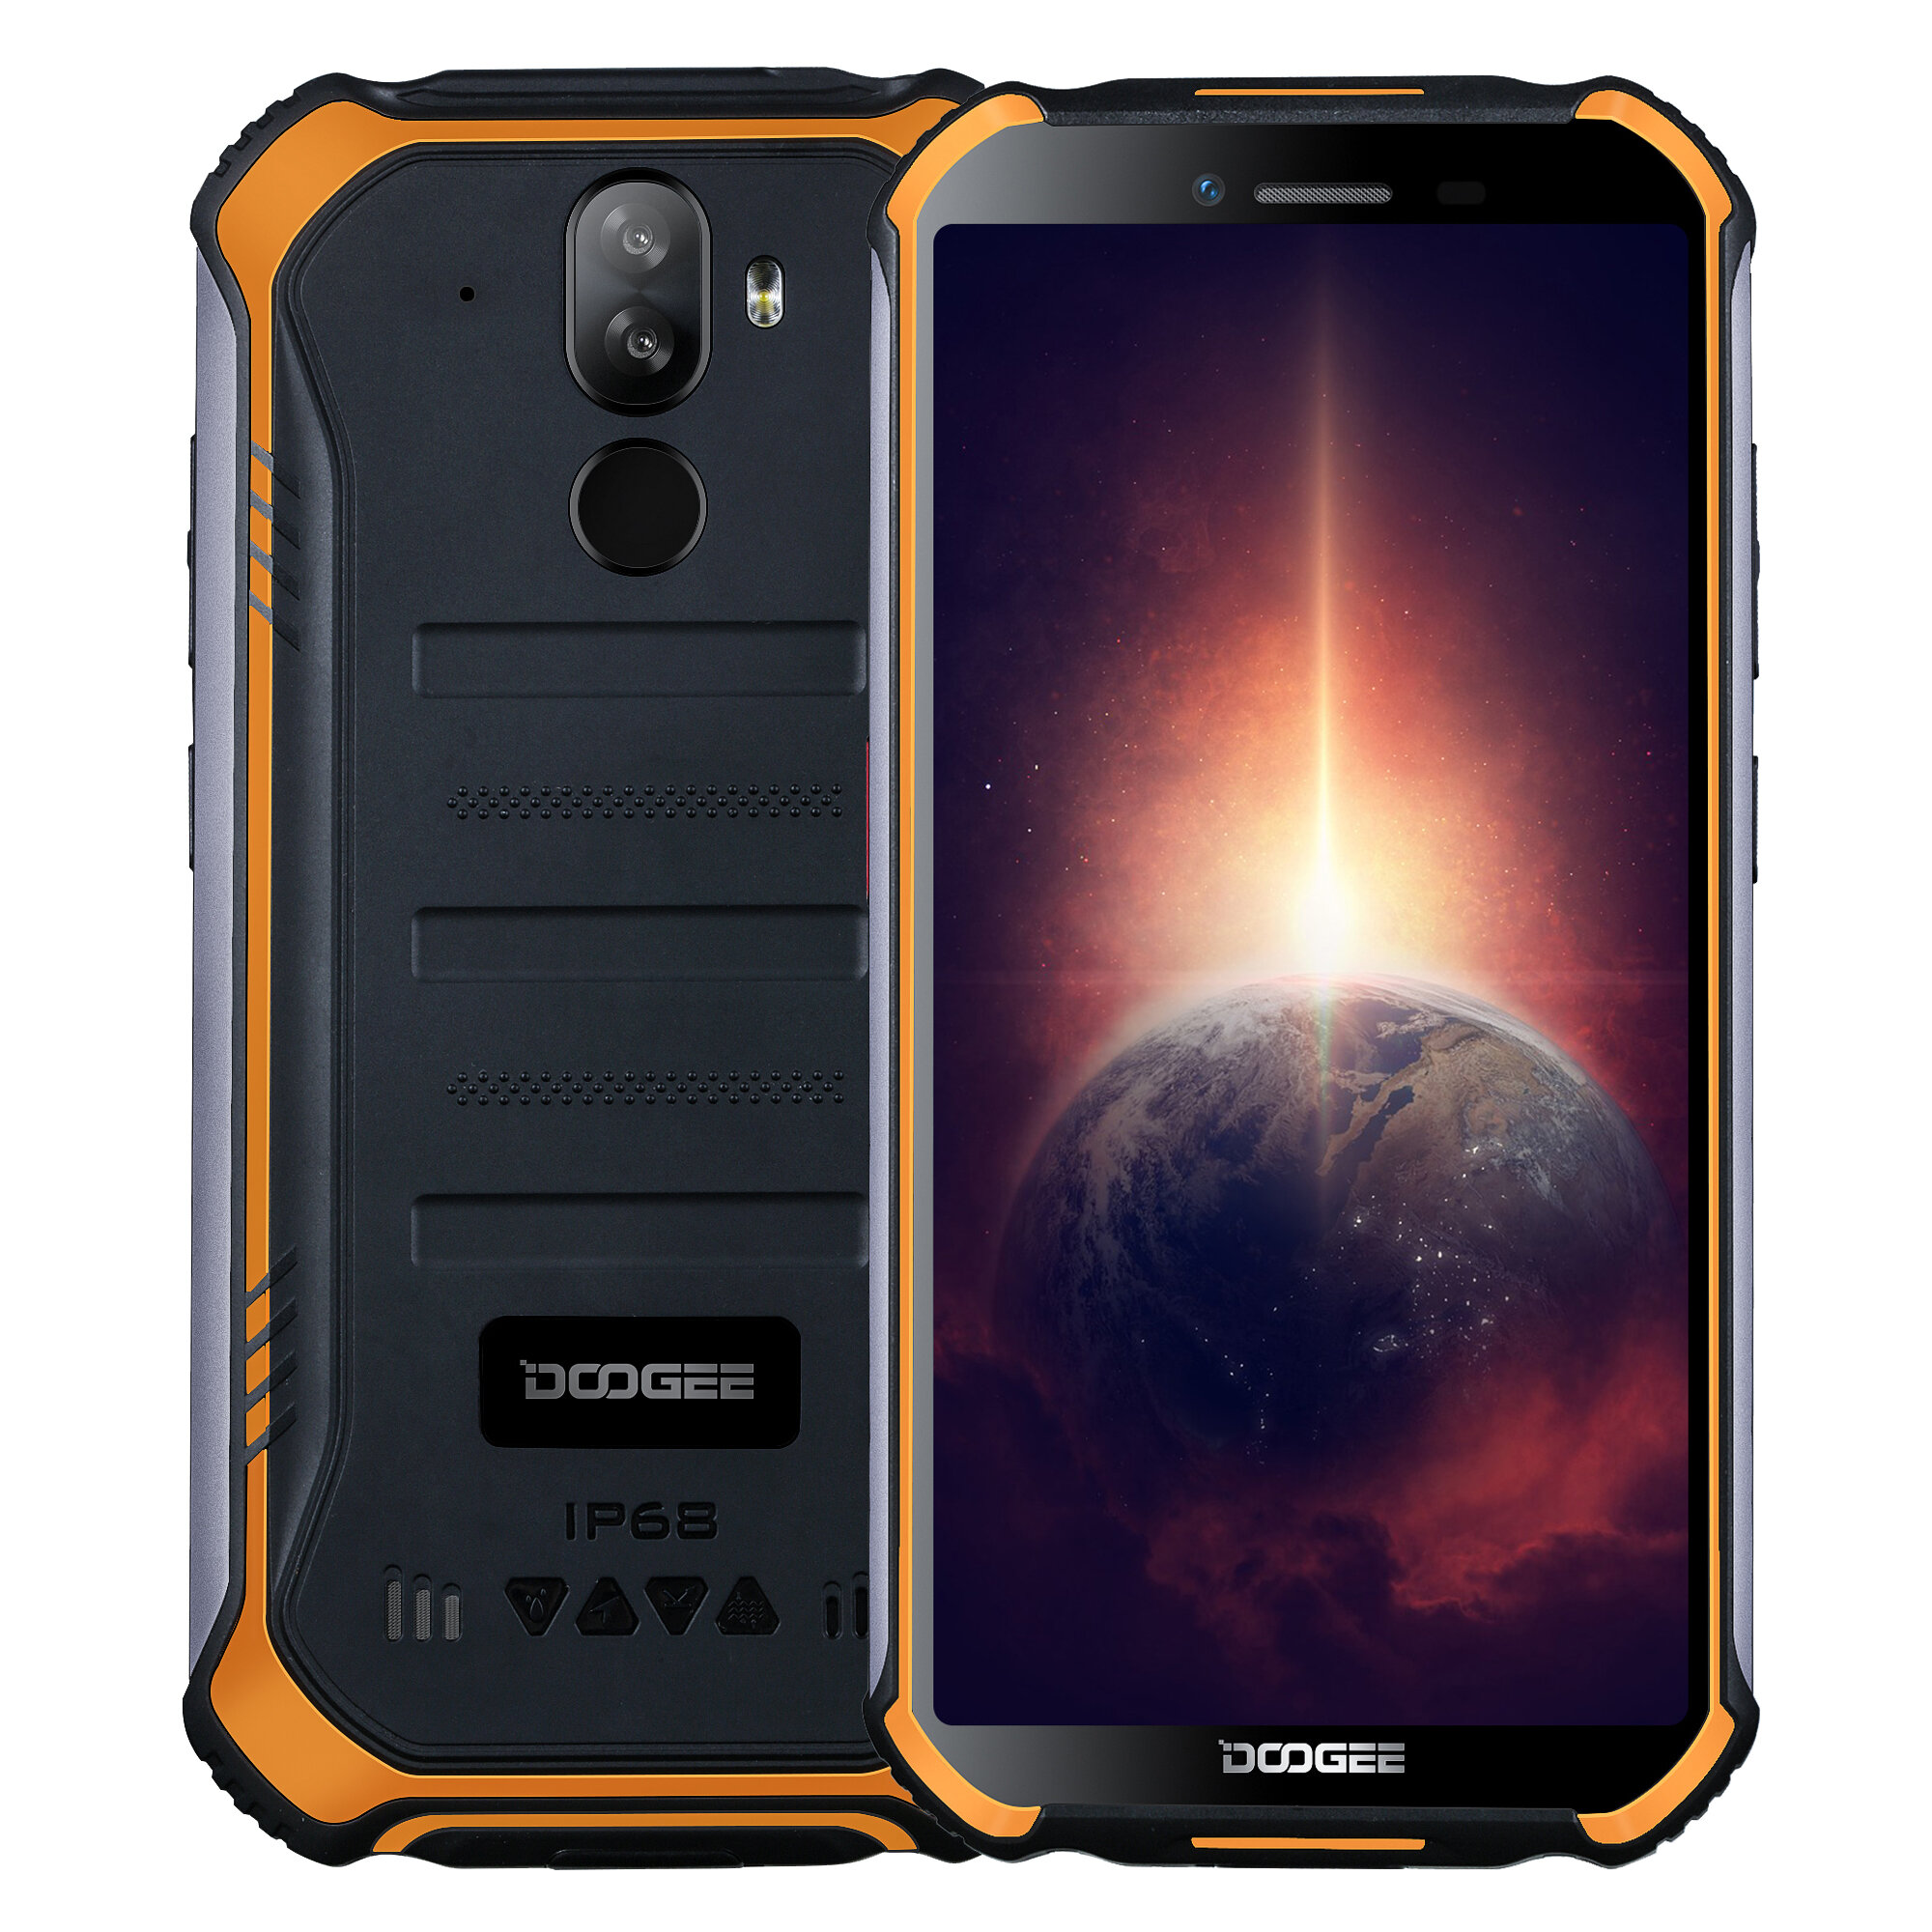 DOOGEE S40 Pro 5.45 inch IP68/IP69K Waterproof NFC Android 10.0 4650mAh 13MP Dual Rear Camera 4GB 64GB Helio A25 4G Smartphone - Orange